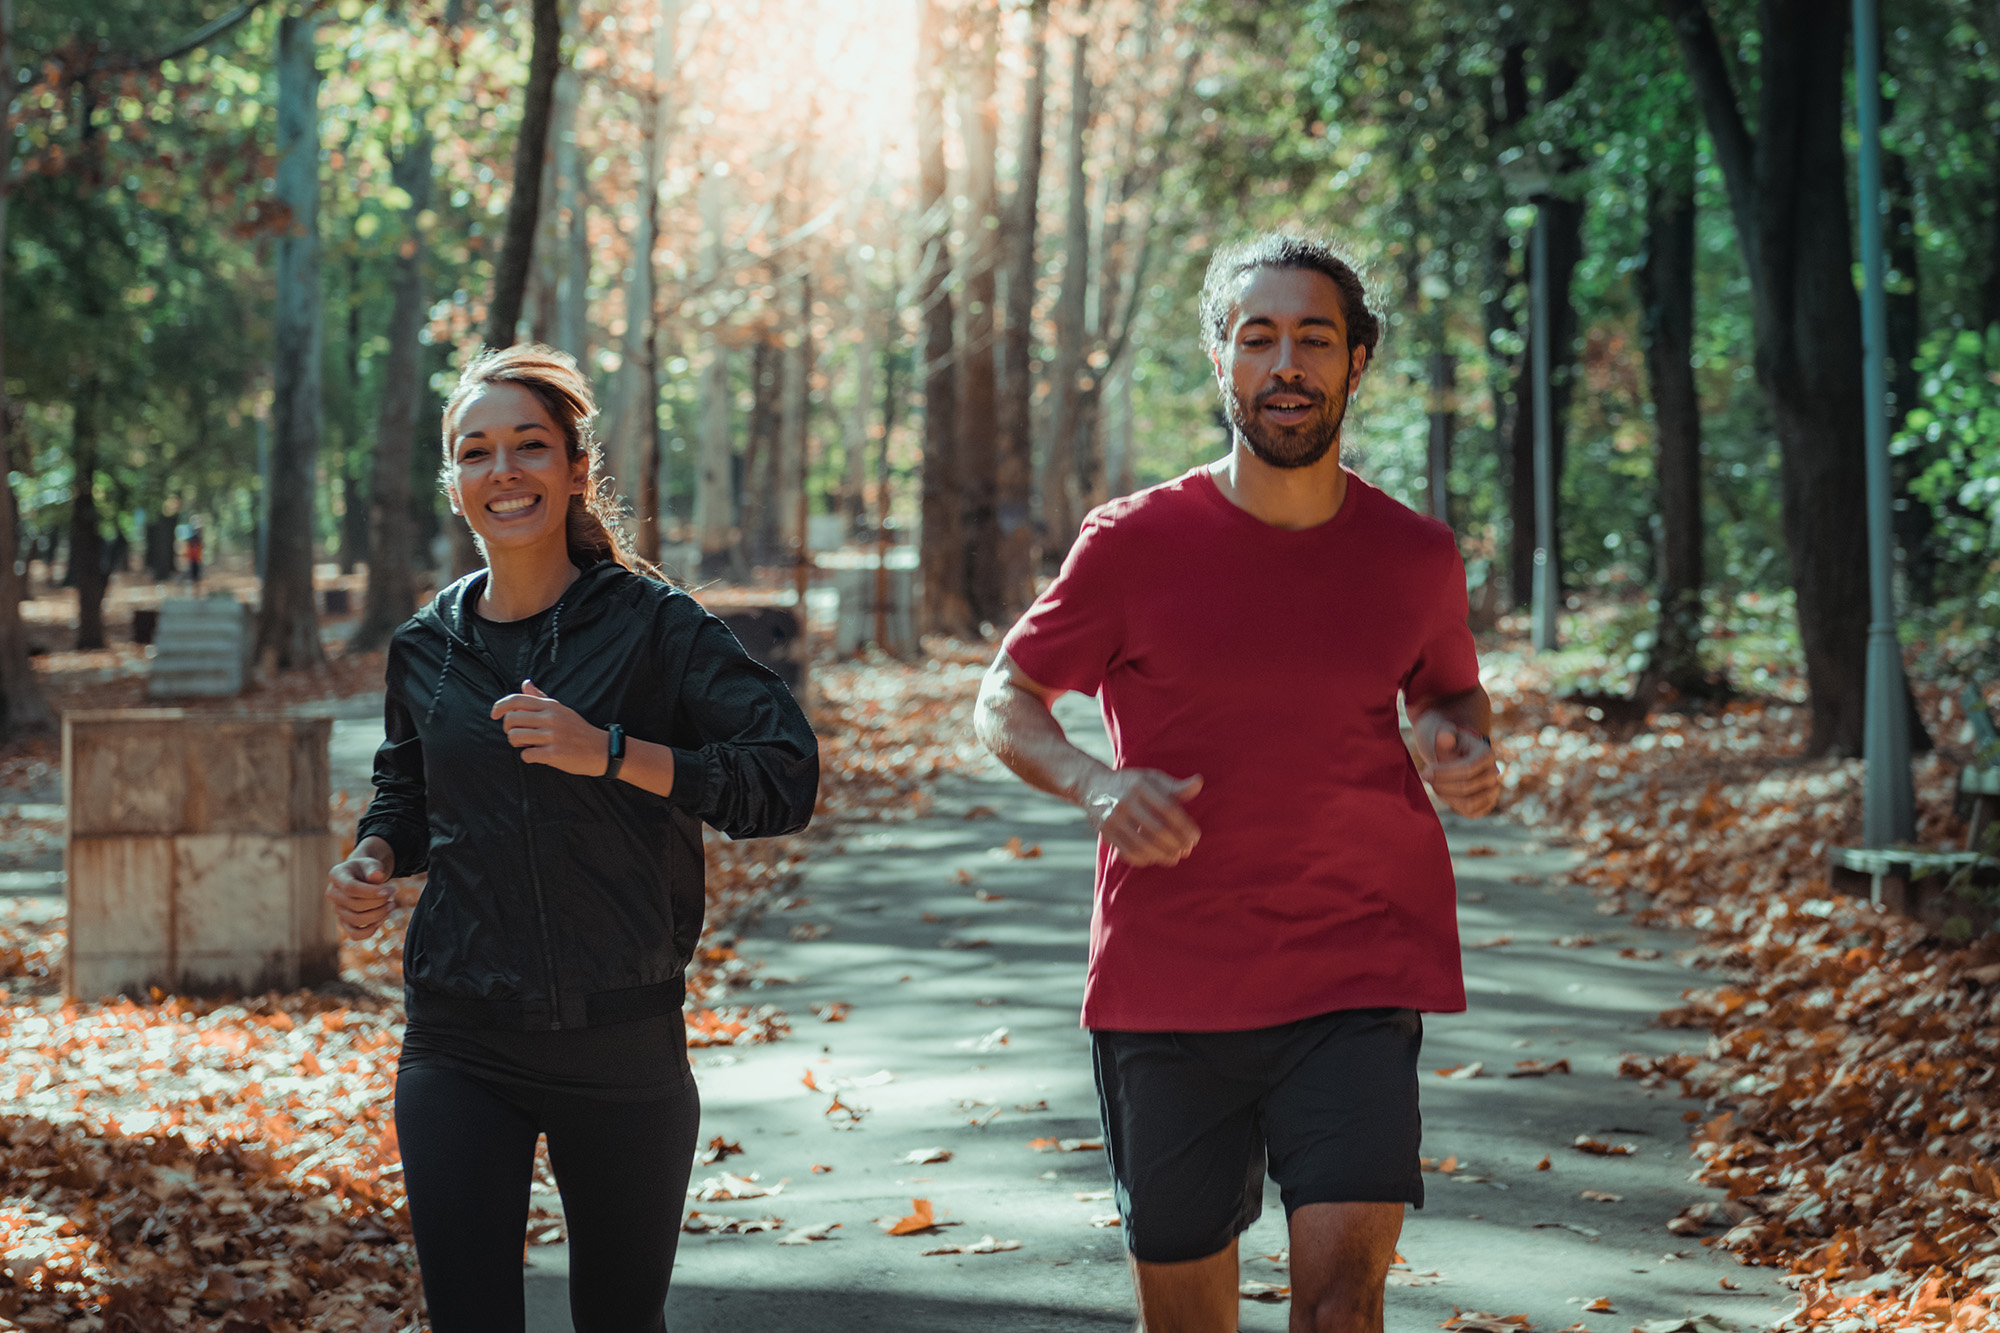 A man and woman, friends jogging together in Park